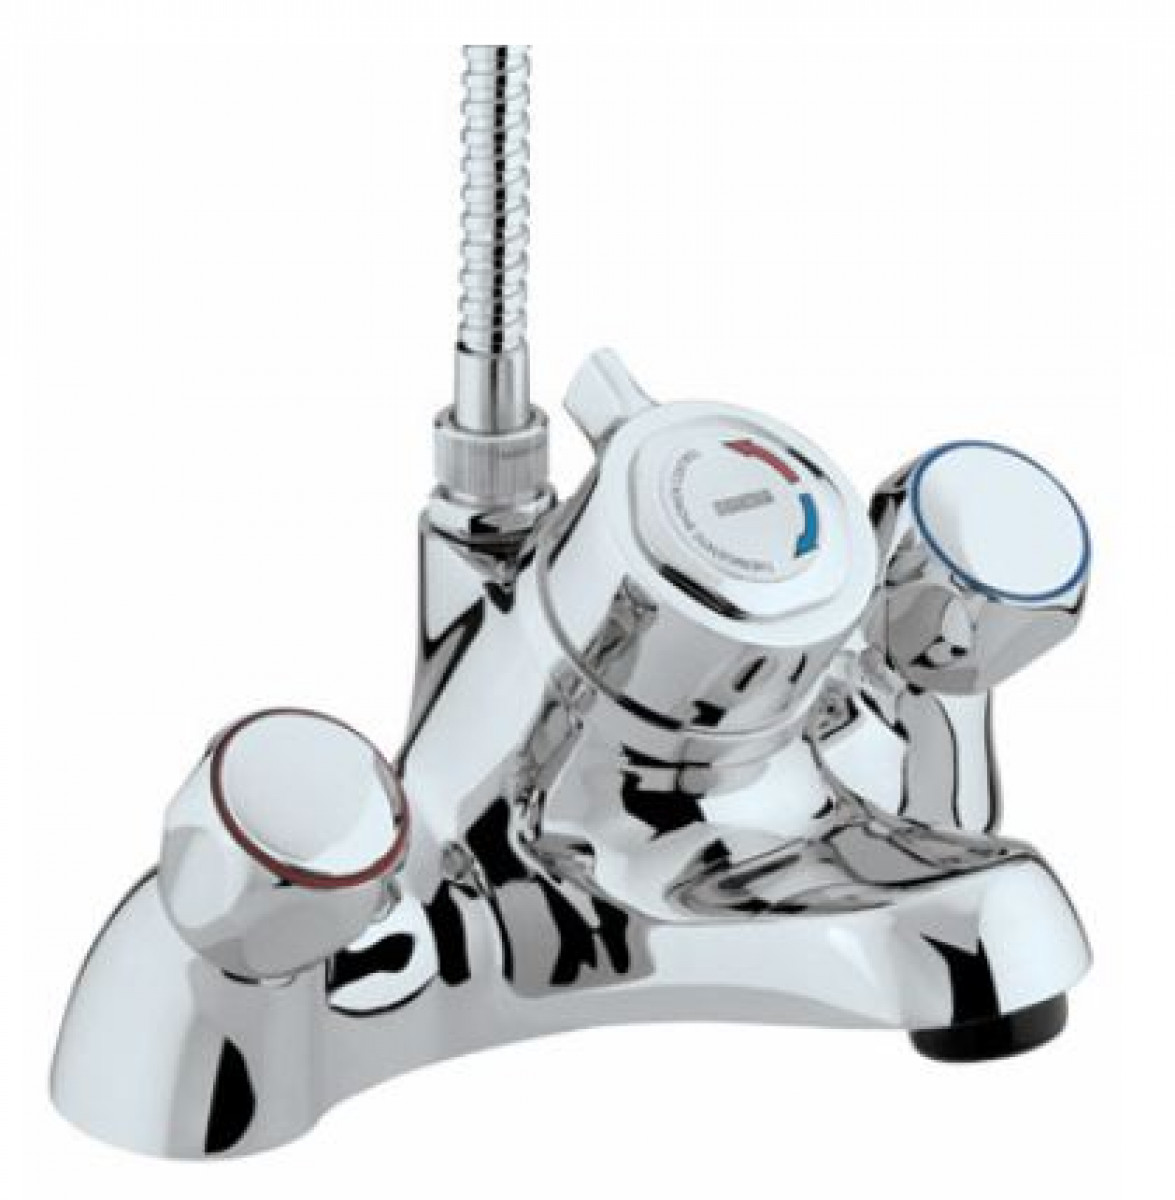 bristan club utility thermostatic bath shower mixer richmond deck mounted thermostatic bath shower mixer tap